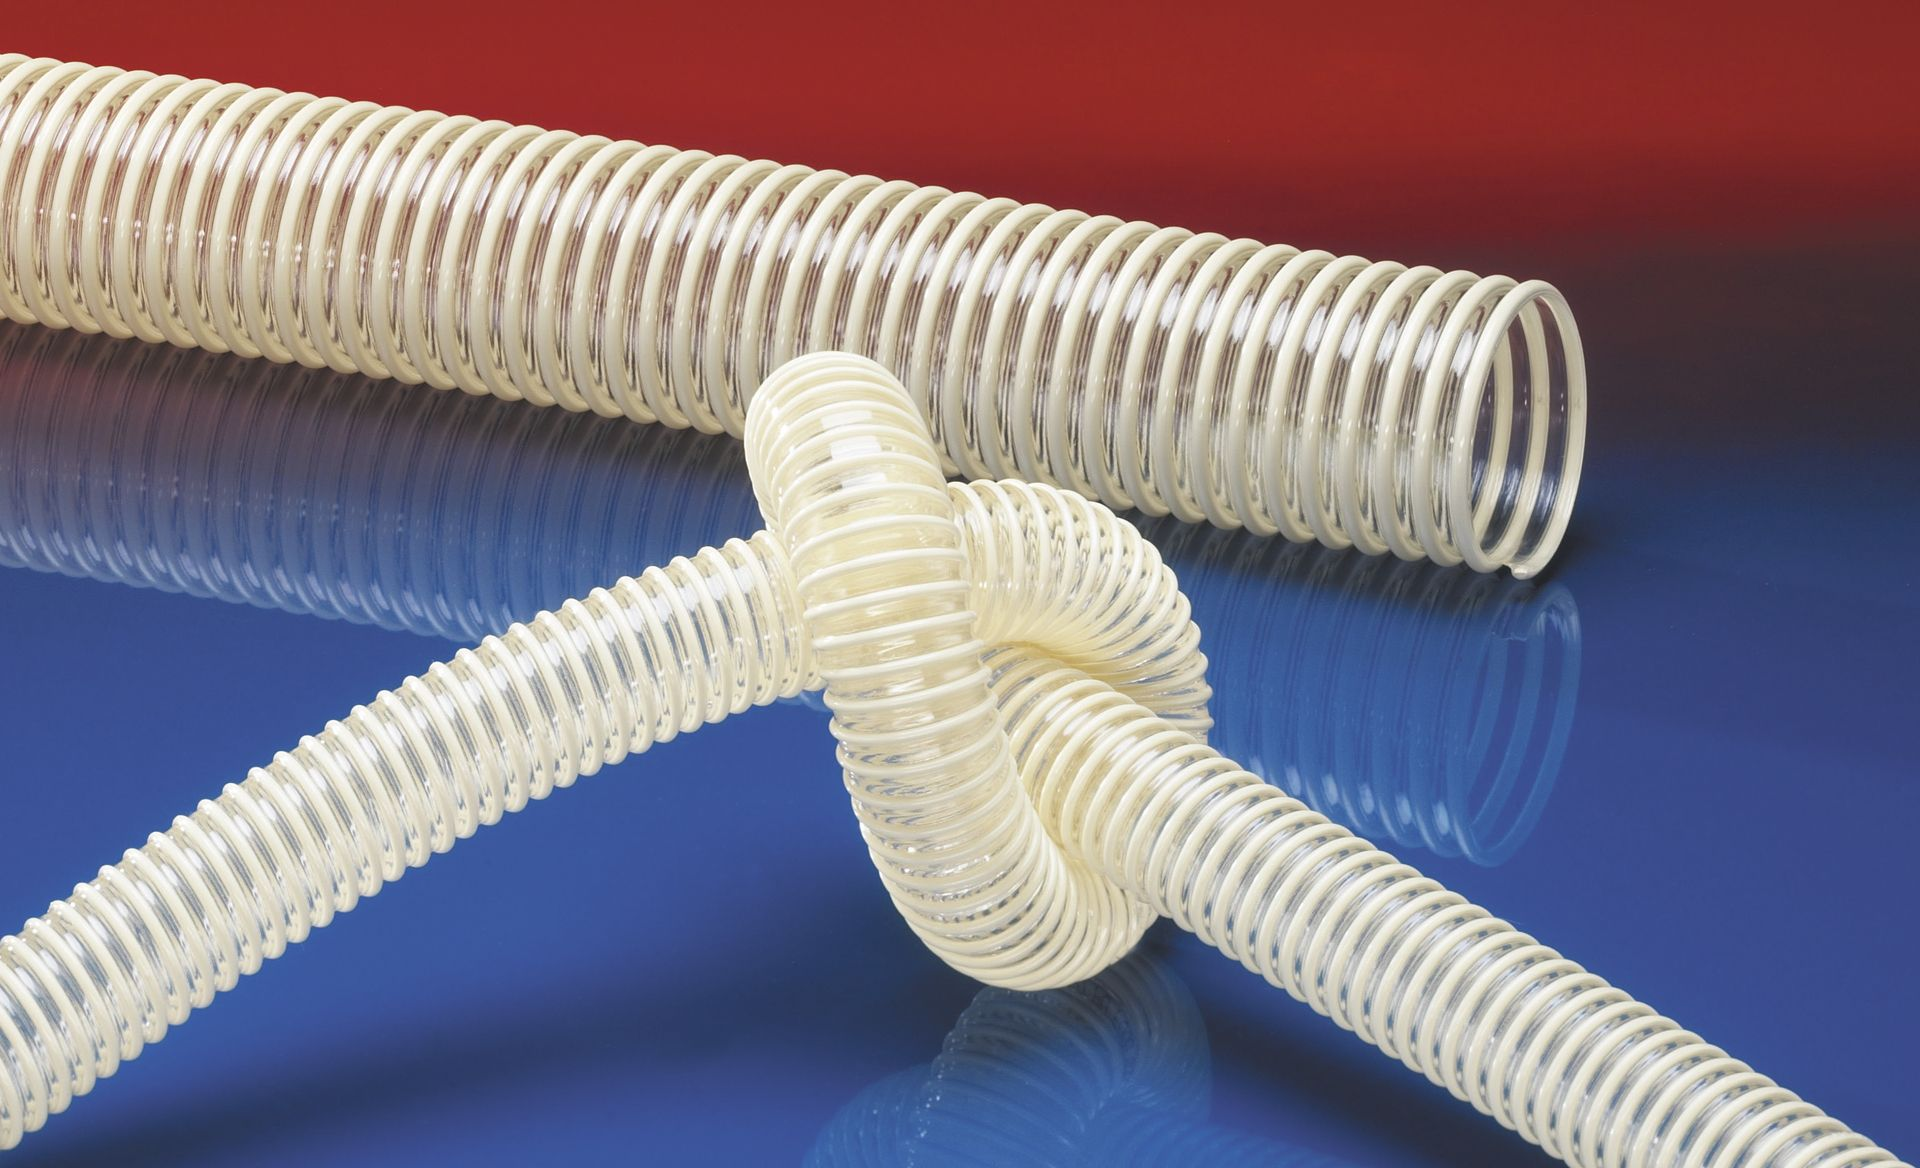 NORRES Lightweight Food-Grade Ducting Hose for Granulate and Gases 3 ID 50 ft